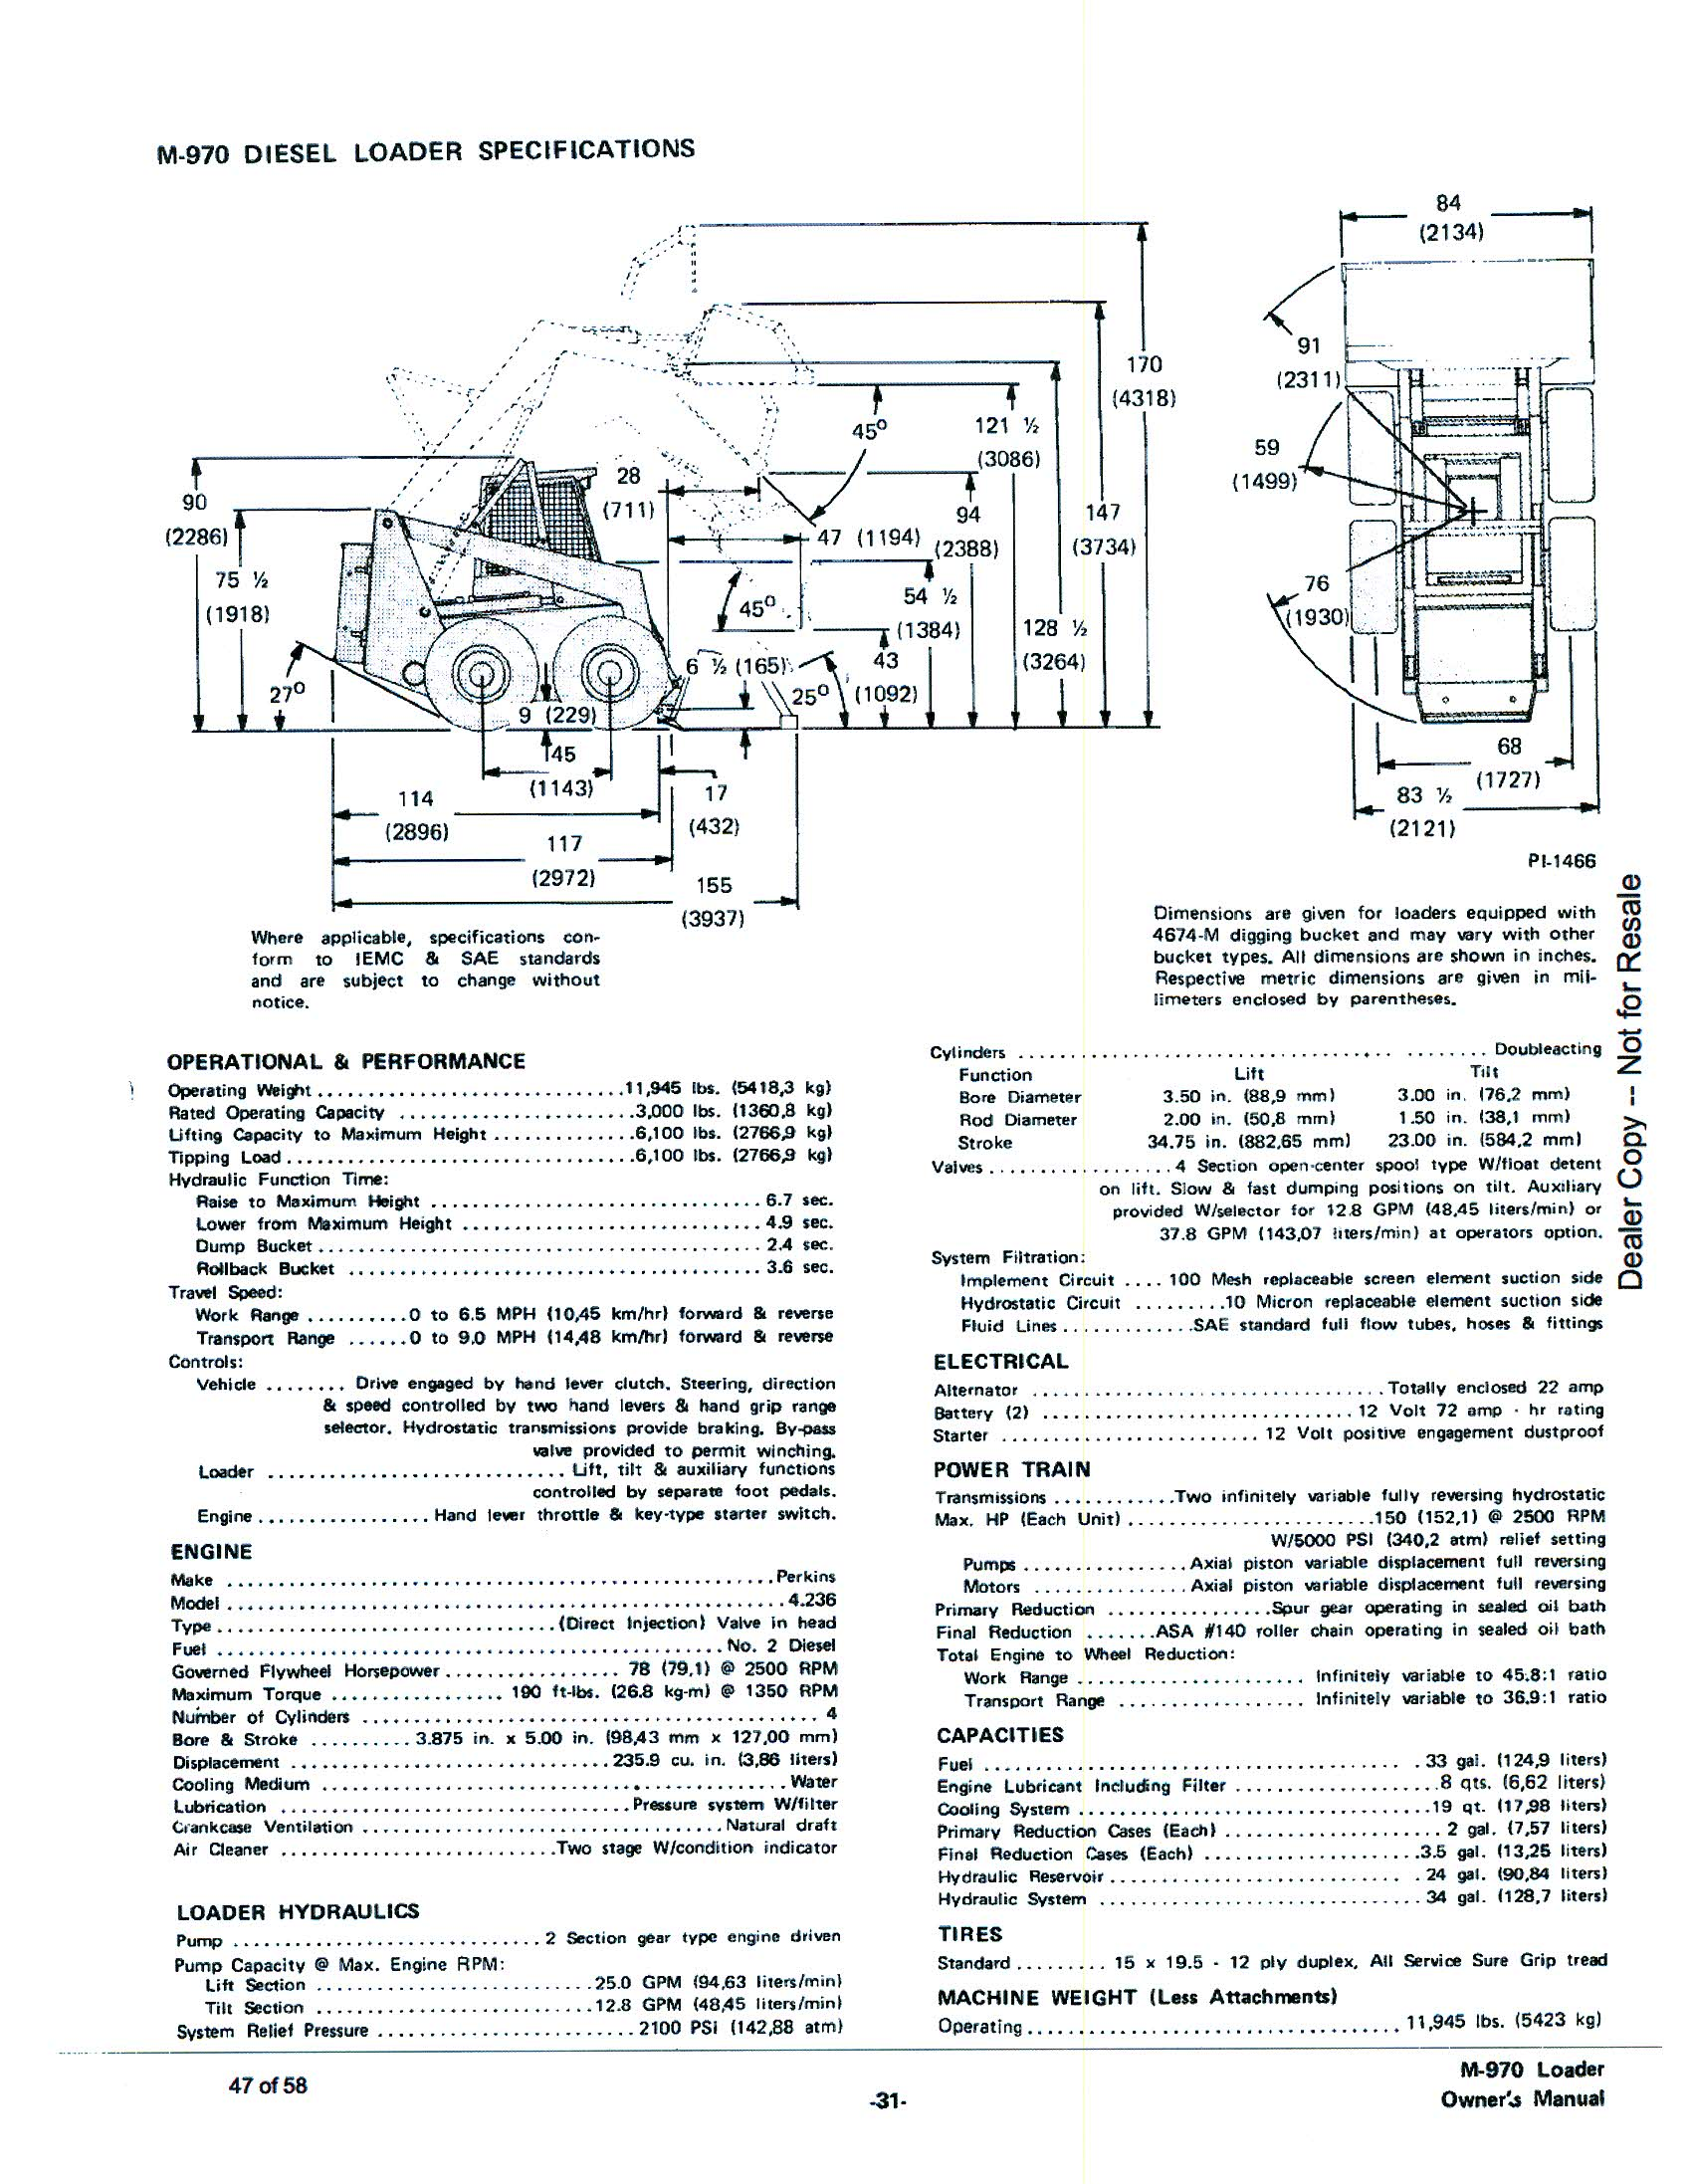 Clark Bobcat Wiring Diagram Harness Schematics 863 Fuse Box Lq9 Instruction Manual 7 Pin Schematic